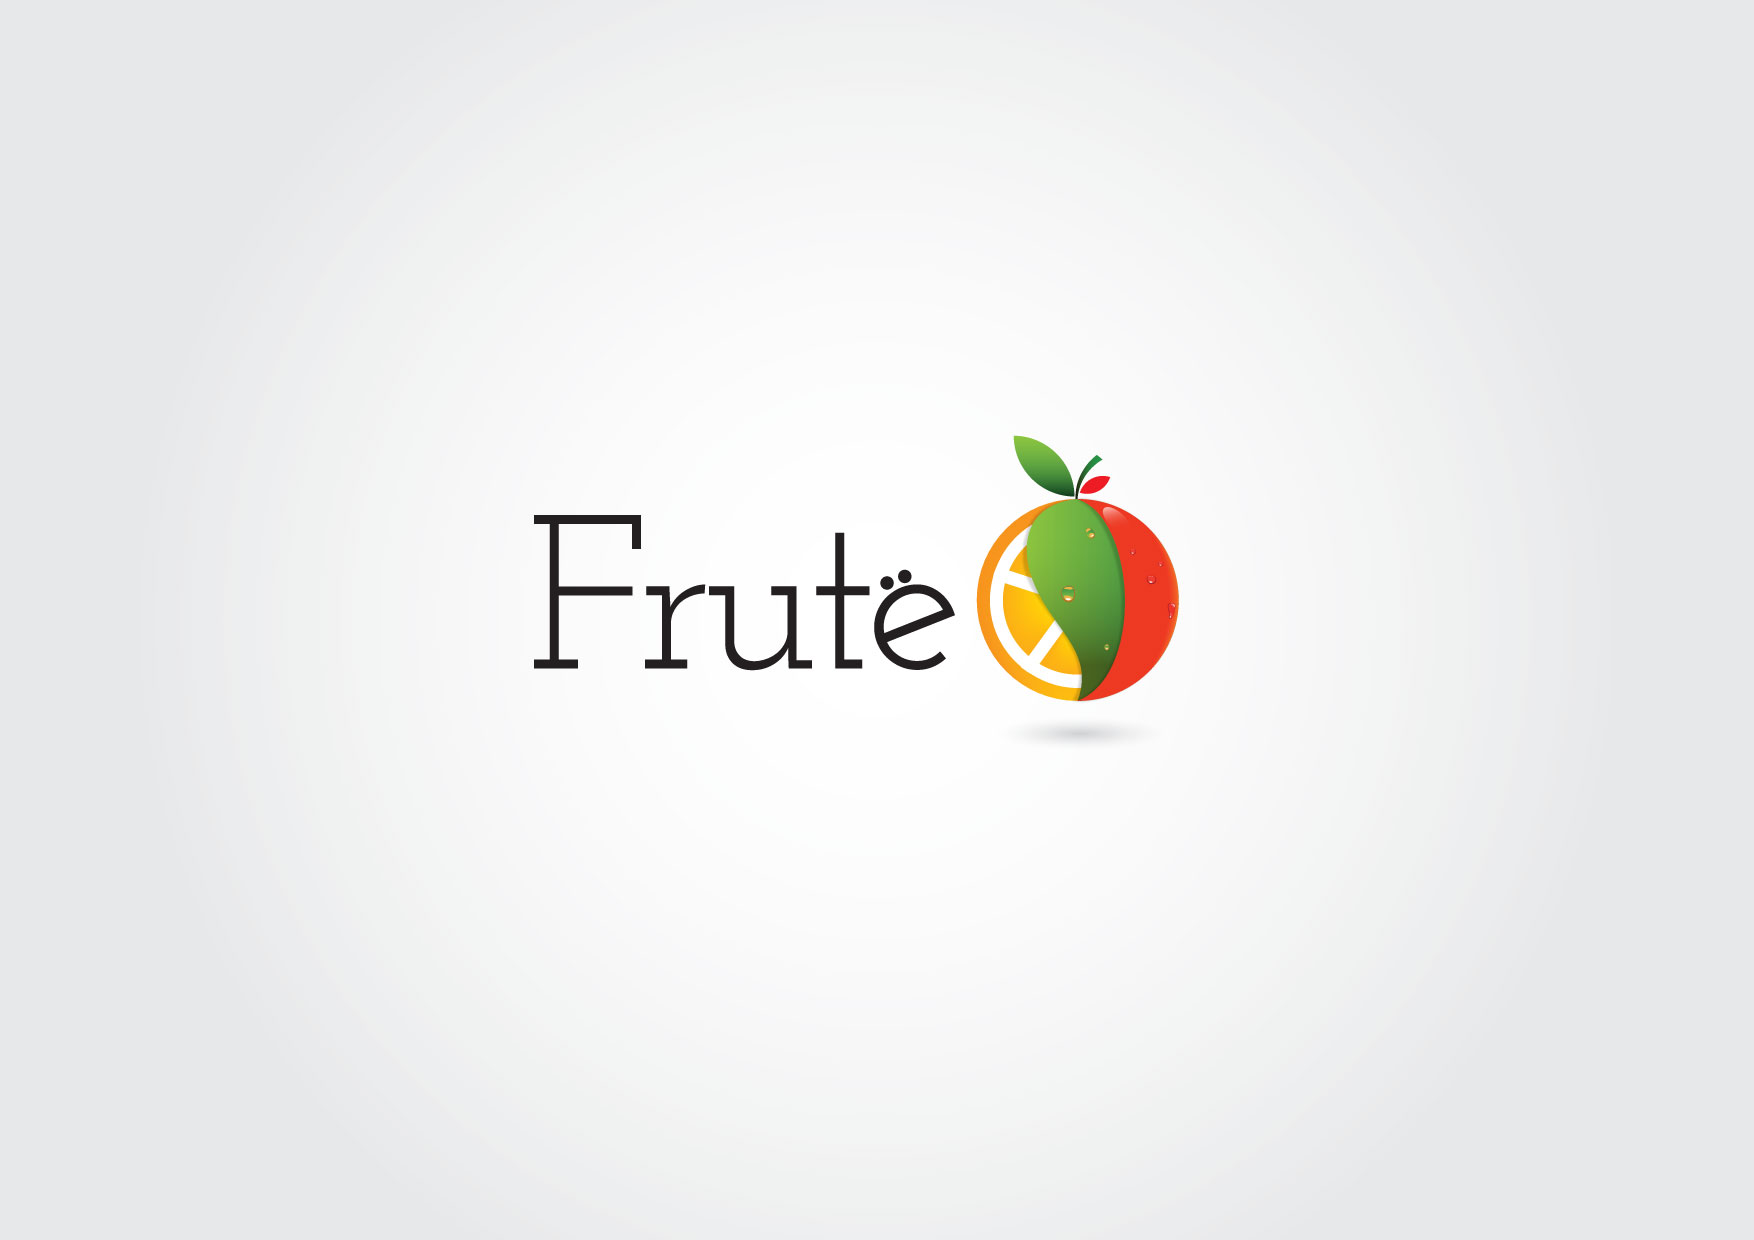 Logo Design by Dit L Pambudi - Entry No. 96 in the Logo Design Contest Imaginative Logo Design for Fruté.